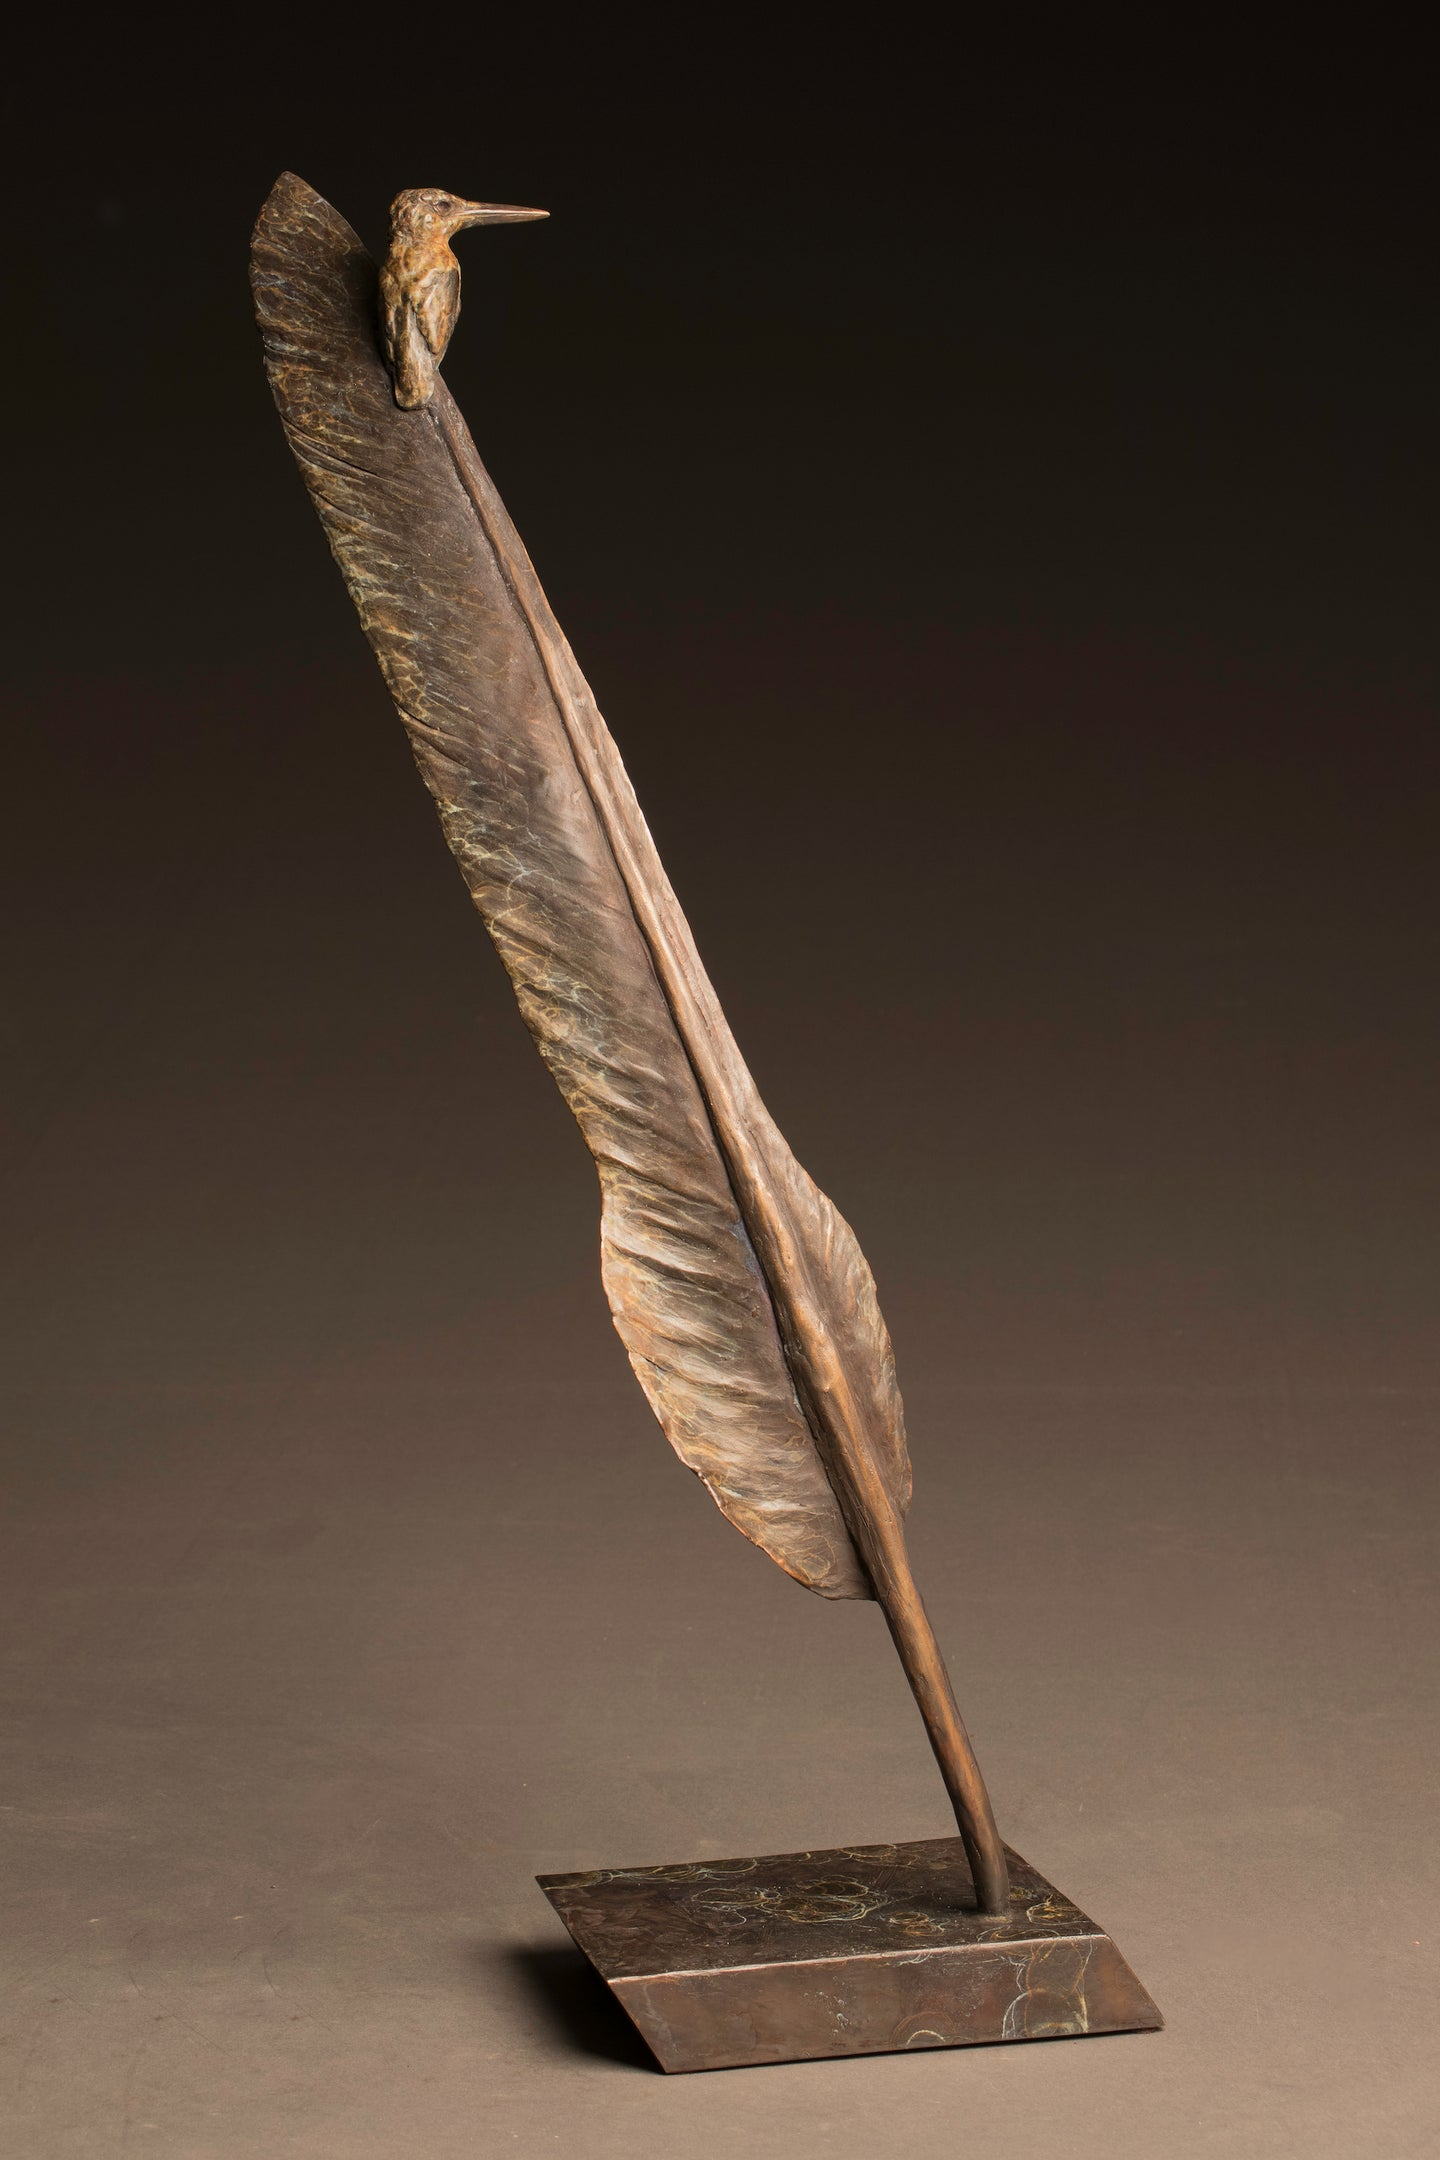 Stefan Savides - African Extremes-Kingfisher on Kori Bustard Feather  - Limited Edition Sculpture